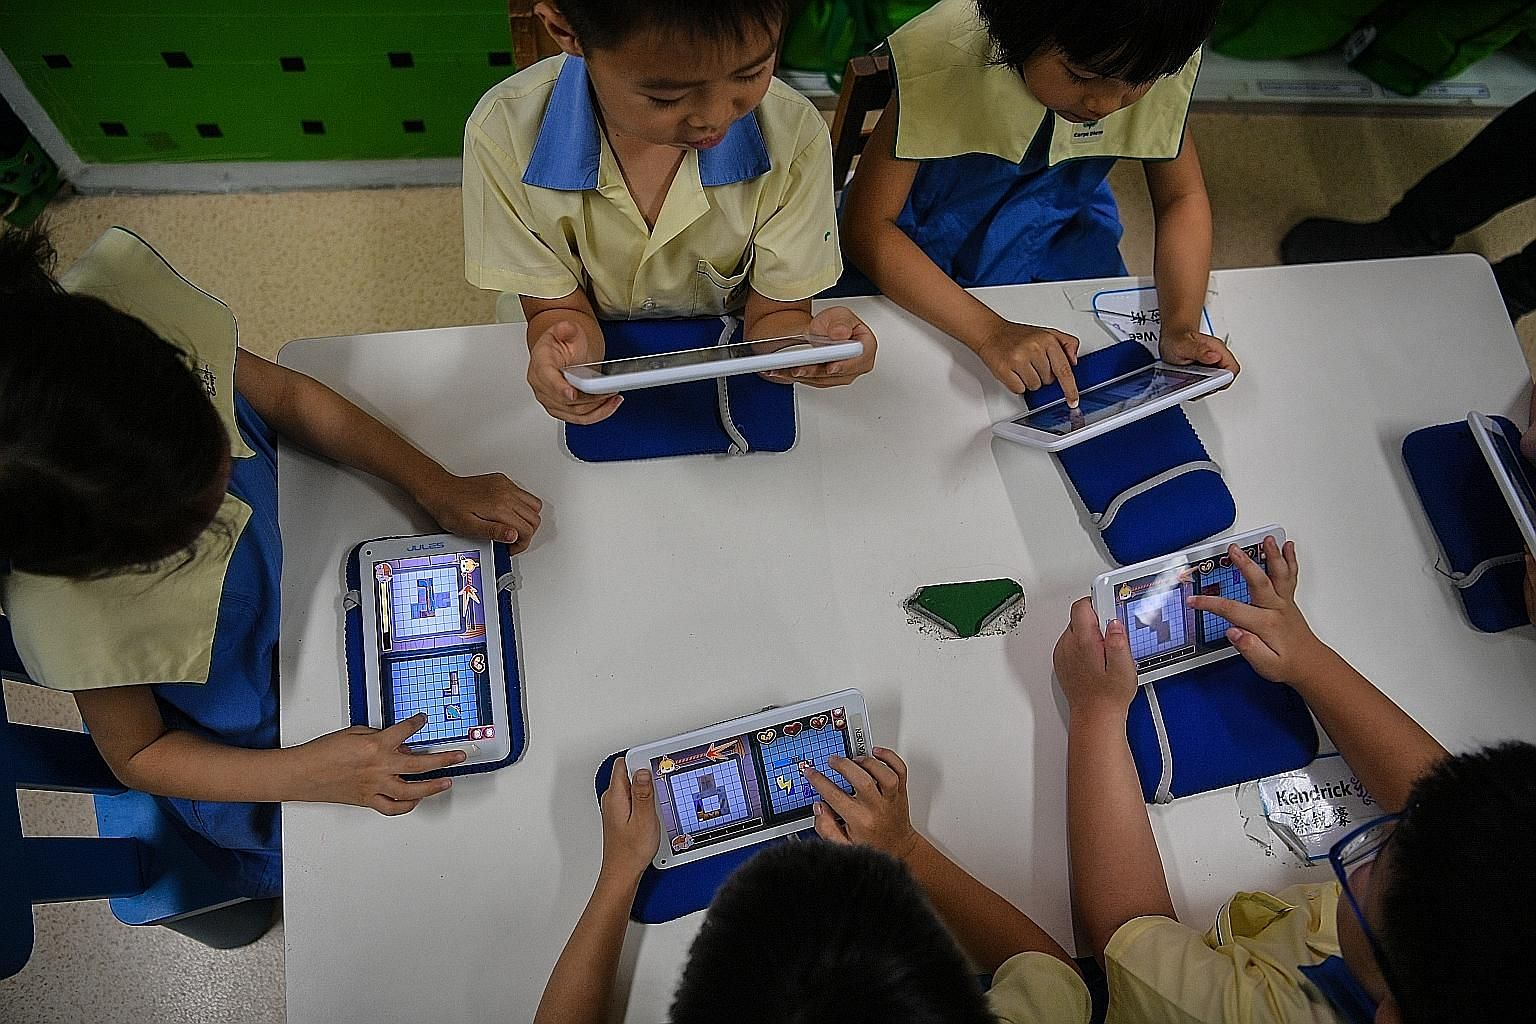 Children at Carpe Diem Juniors playing the Manta Match Mania game on the School of Fish app, developed by education firm Jules Ventures for use in pre-school settings. They spend an hour each week on the curriculum, playing games and reviewing what t